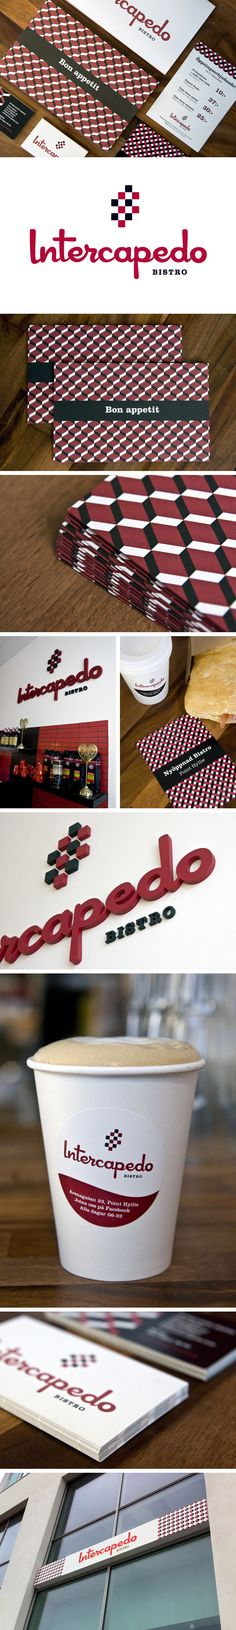 visual ID / Intercapedo Bistro (sample)